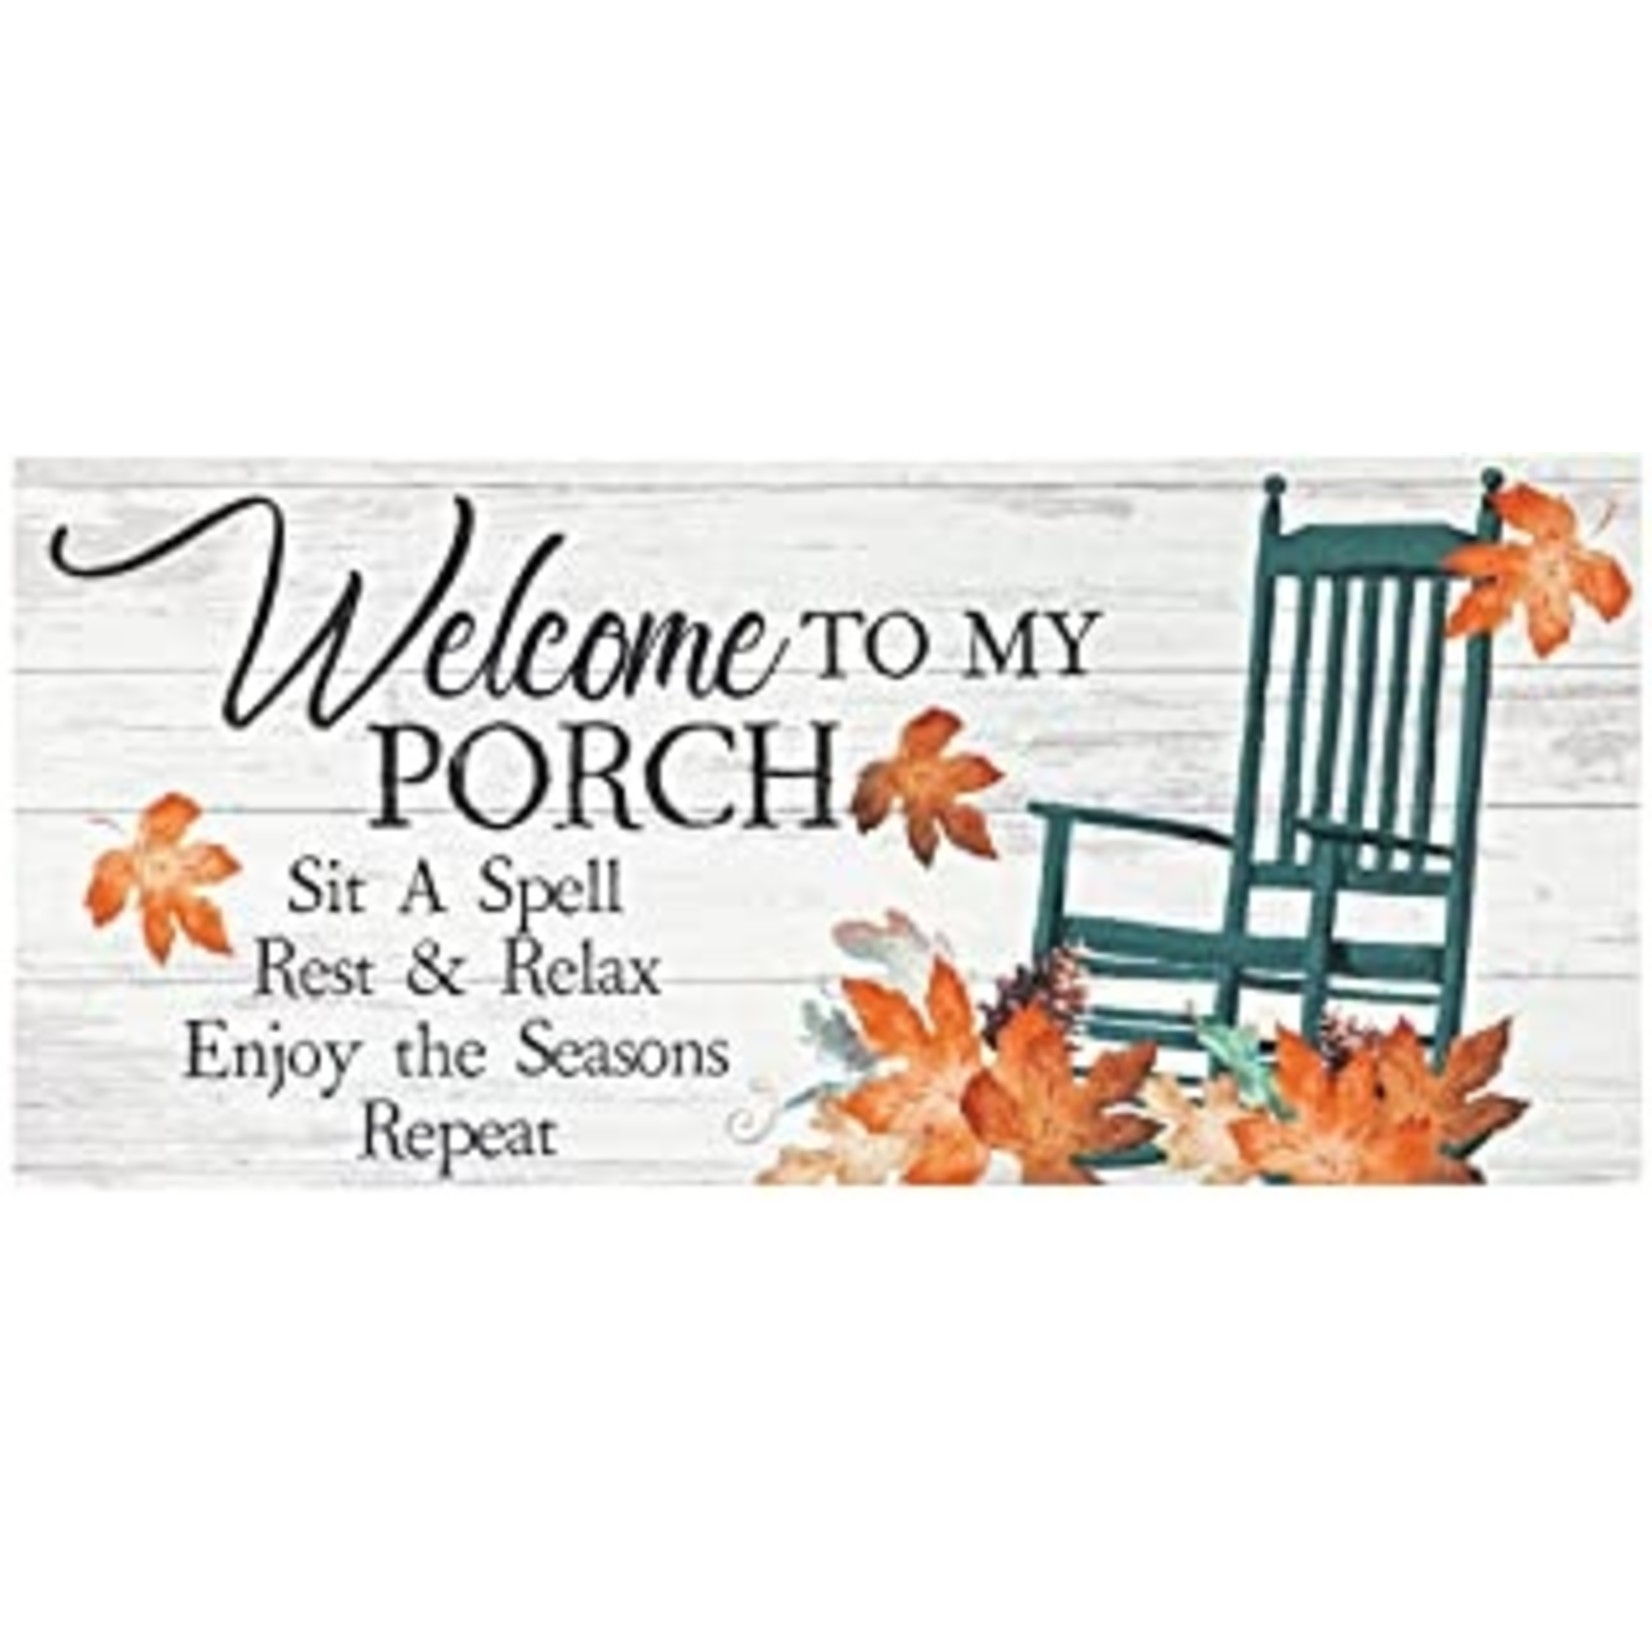 Sassafras fall Porch Rules Welcome